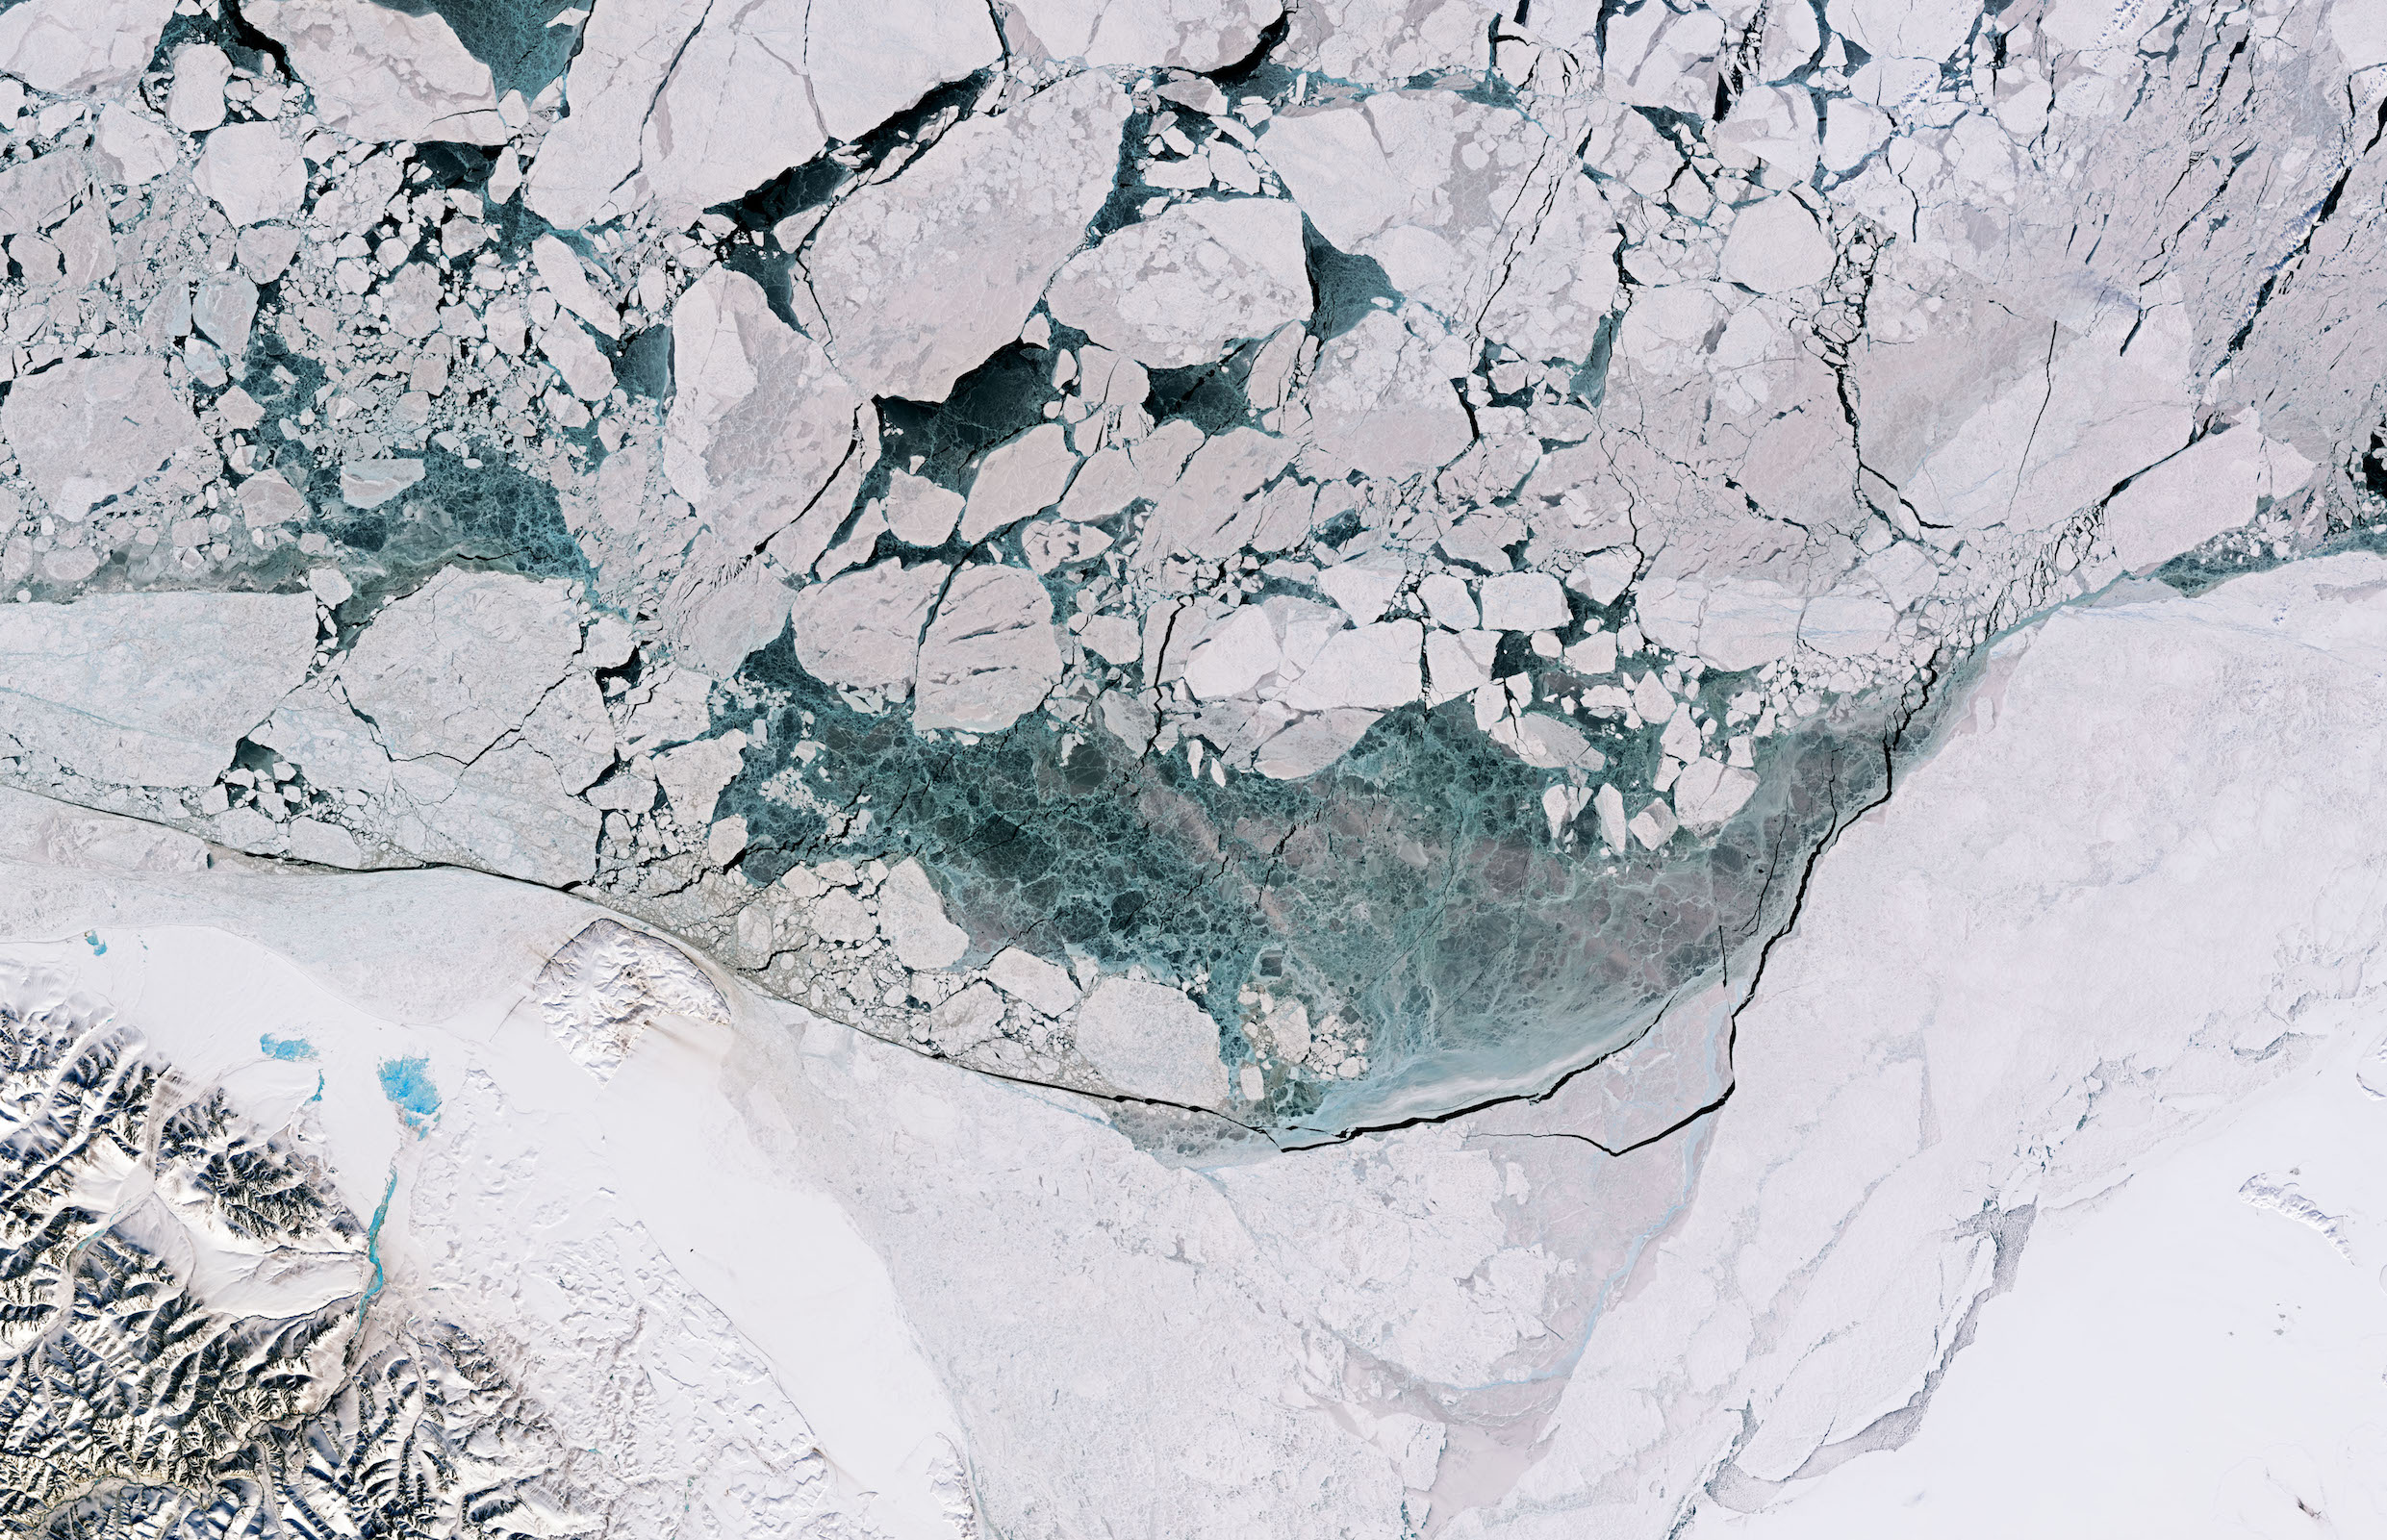 Today's Image of the Day comes from the NASA Earth Observatory and features a look at ice melting along the Beaufort Sea as a result of warming spring temperatures.